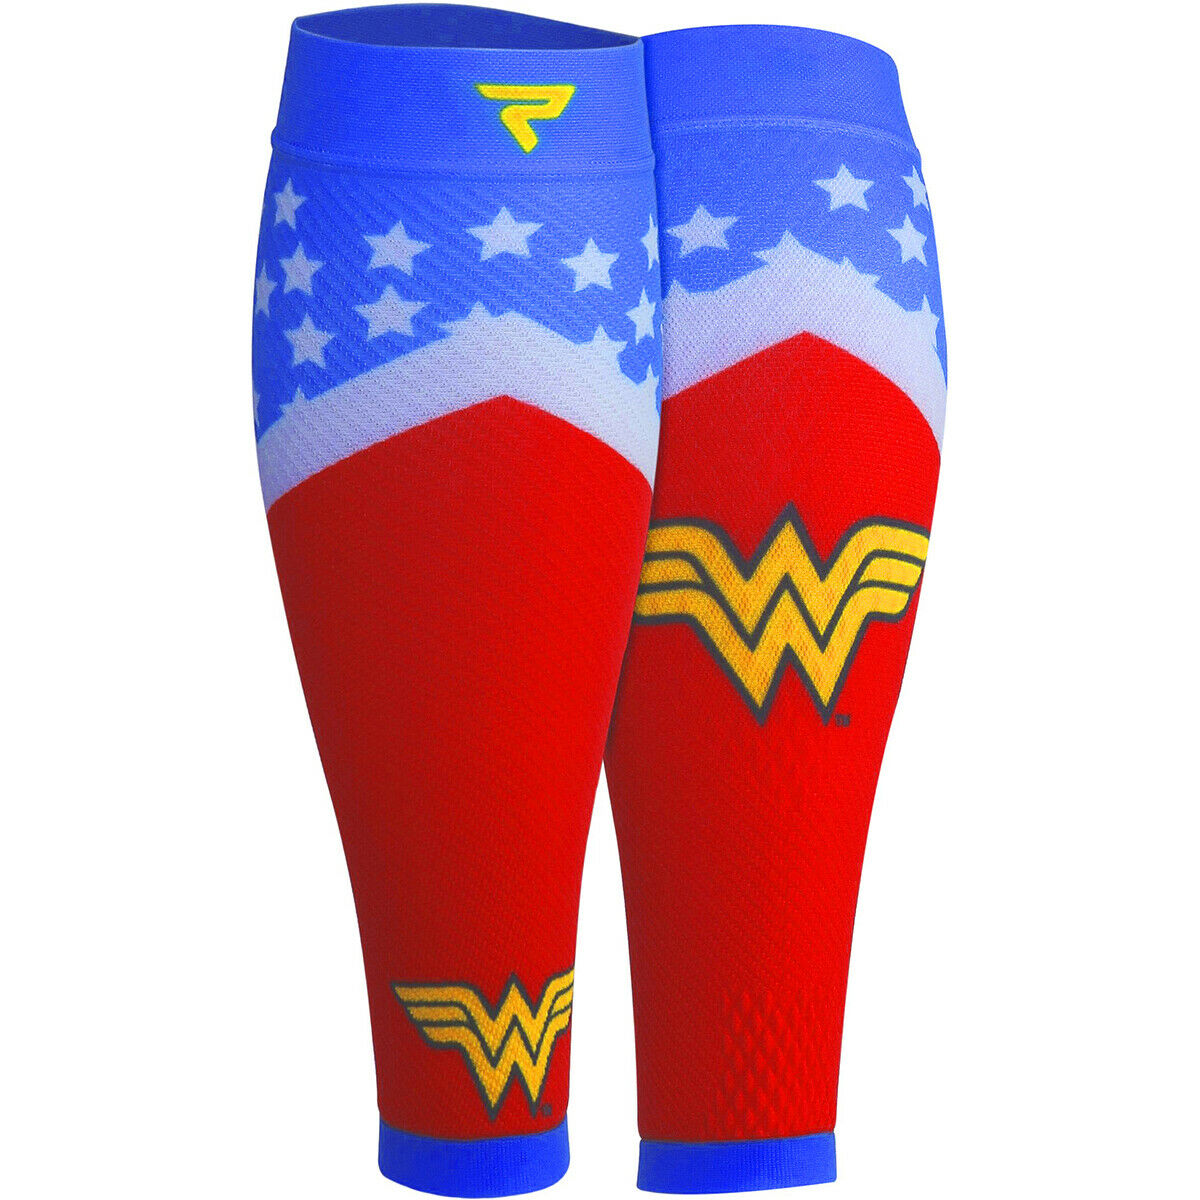 Performa  Compression Wonder Woman Calf Sleeves - Helps Shin Splints  ultra-low prices